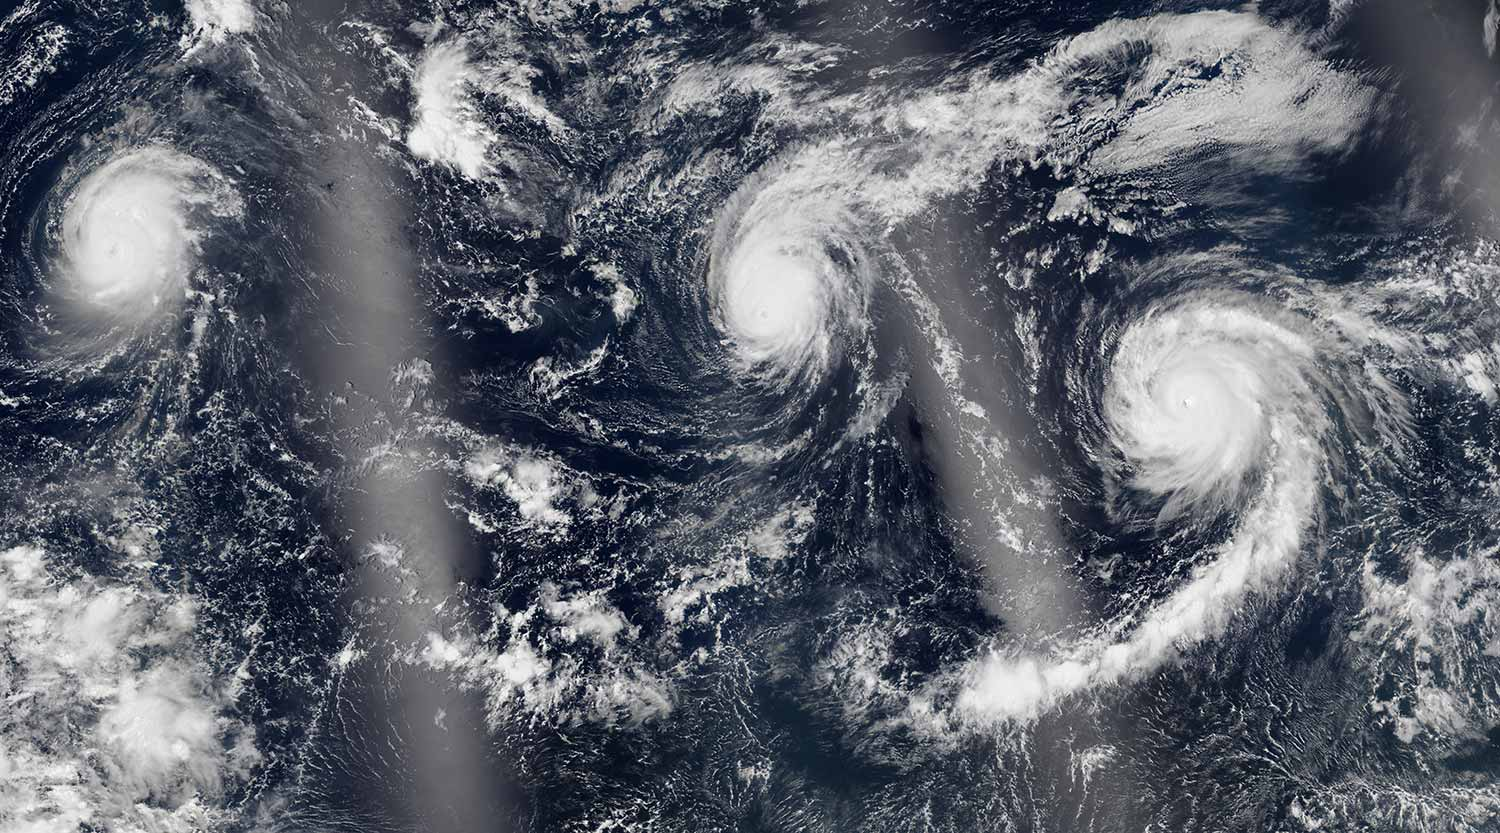 Image:For the first time in recorded history, three category-4 hurricanes formed in the Pacific Ocean in August. Photo: NASA Earth Observatory